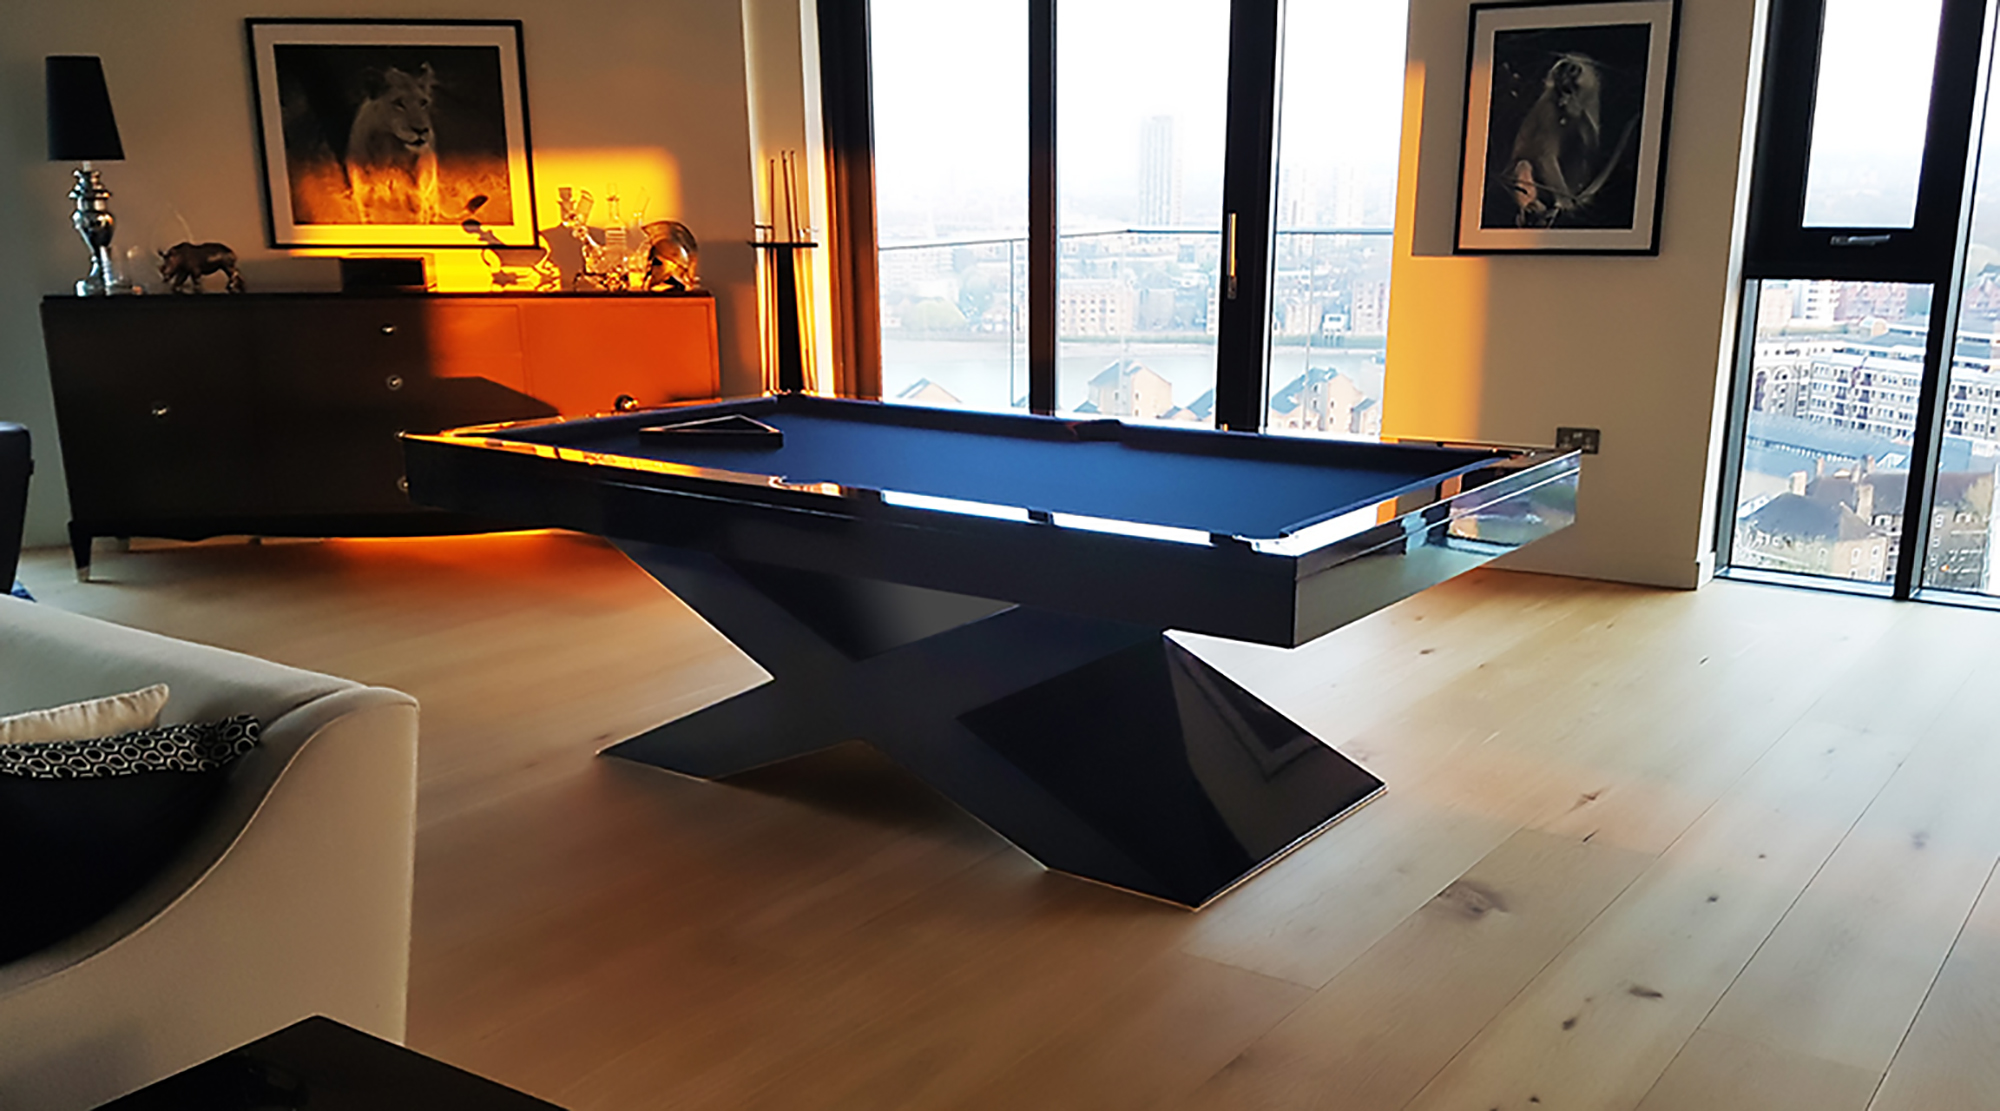 6636-xtreme-pool-table-apartment-1.jpg